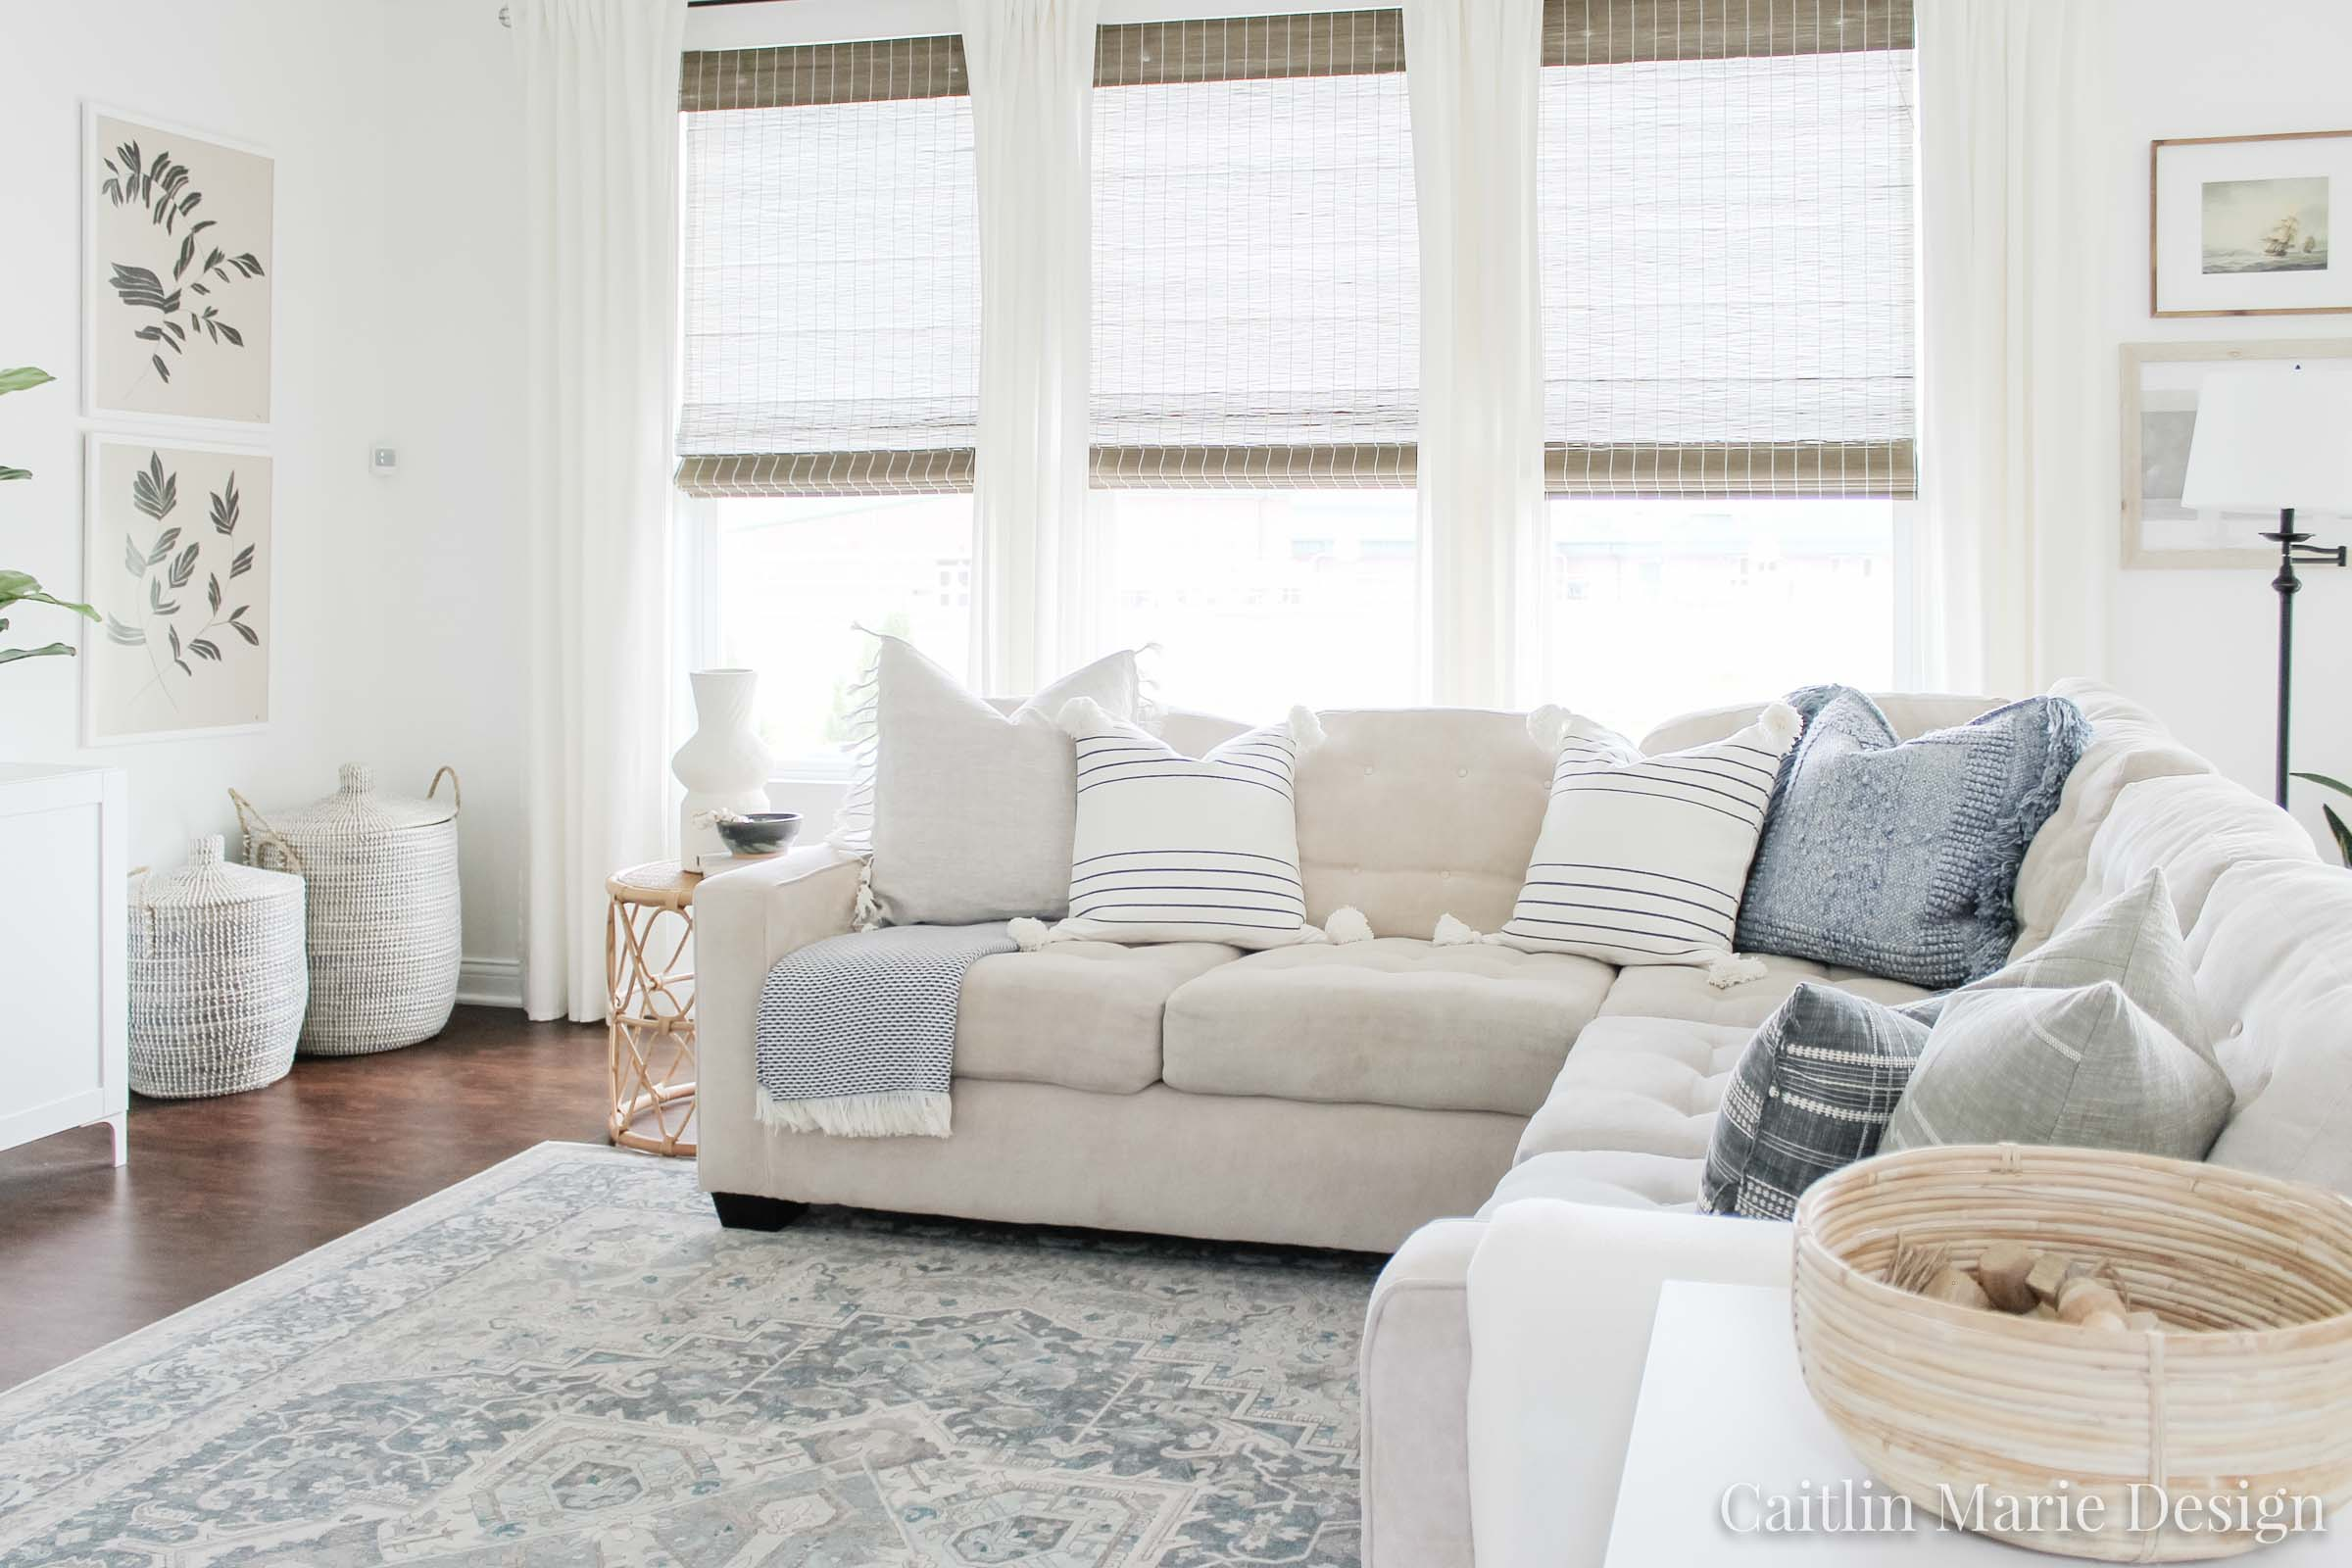 Coastal Pillow Refresh with Serena & Lily | coastal living room, light and airy decor, olive tree, rattan side table, Serena & Lily pillows, coastal decor